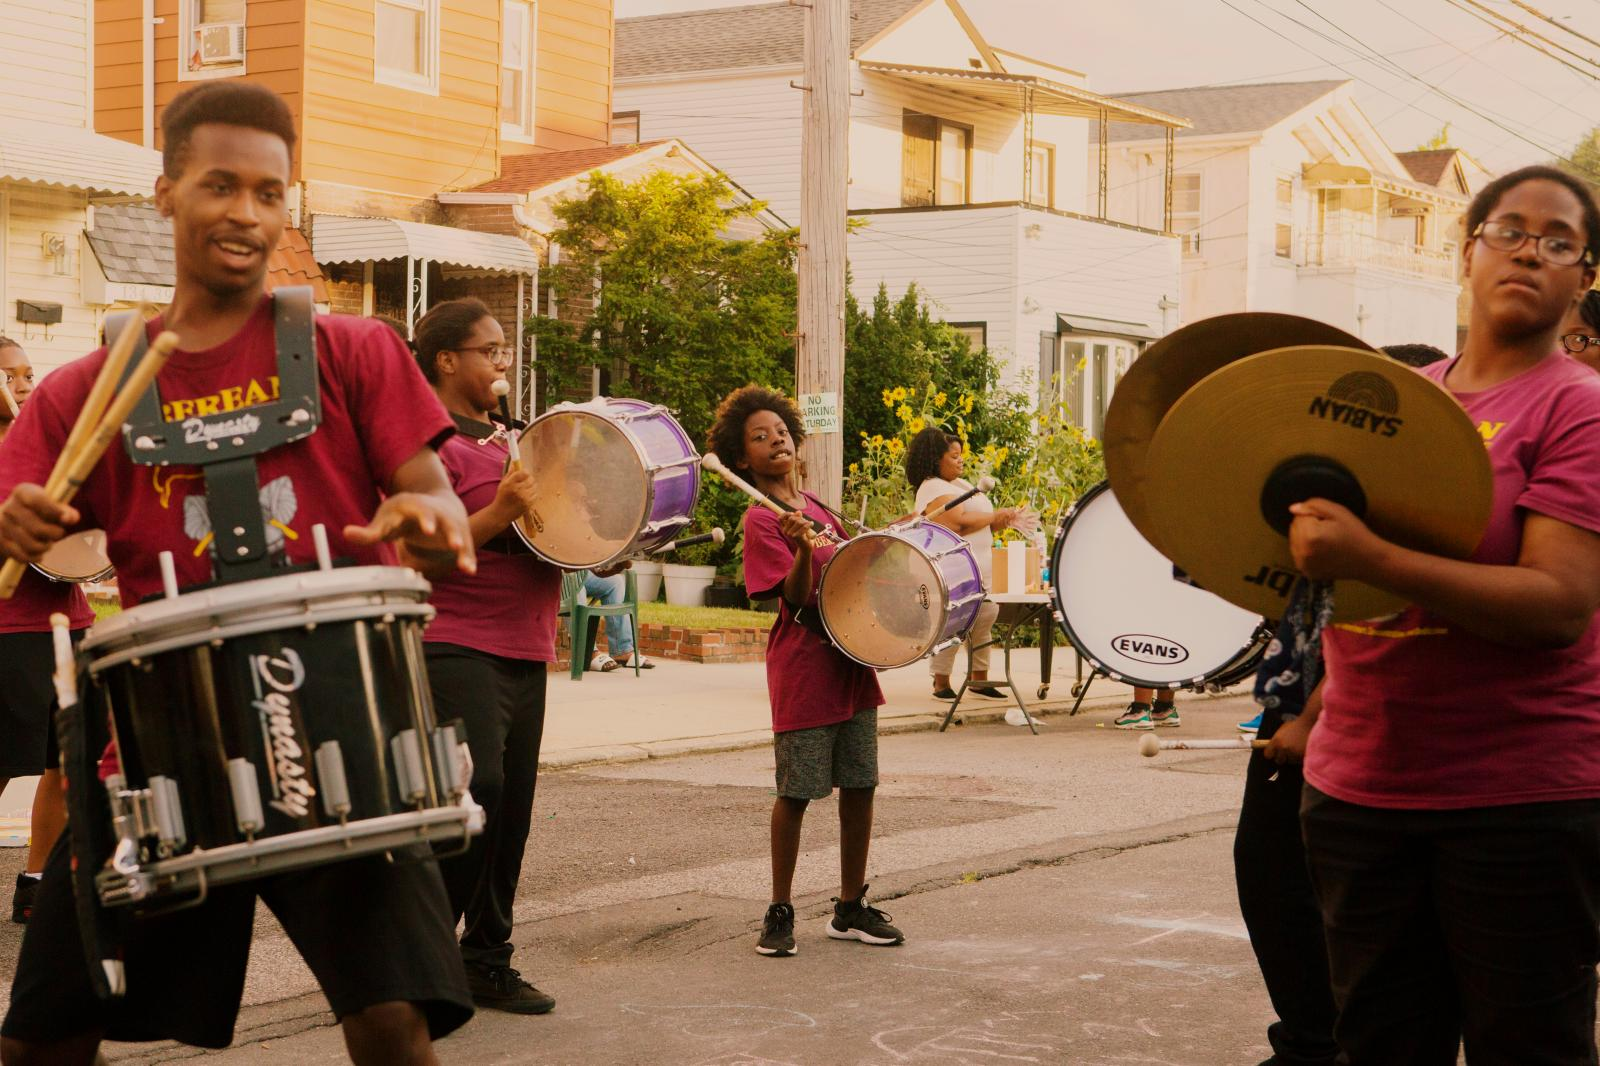 The Berean Community Drumline marches during the block party in Laurelton neighborhood in Queens, New York hosted by Sudan Deane.